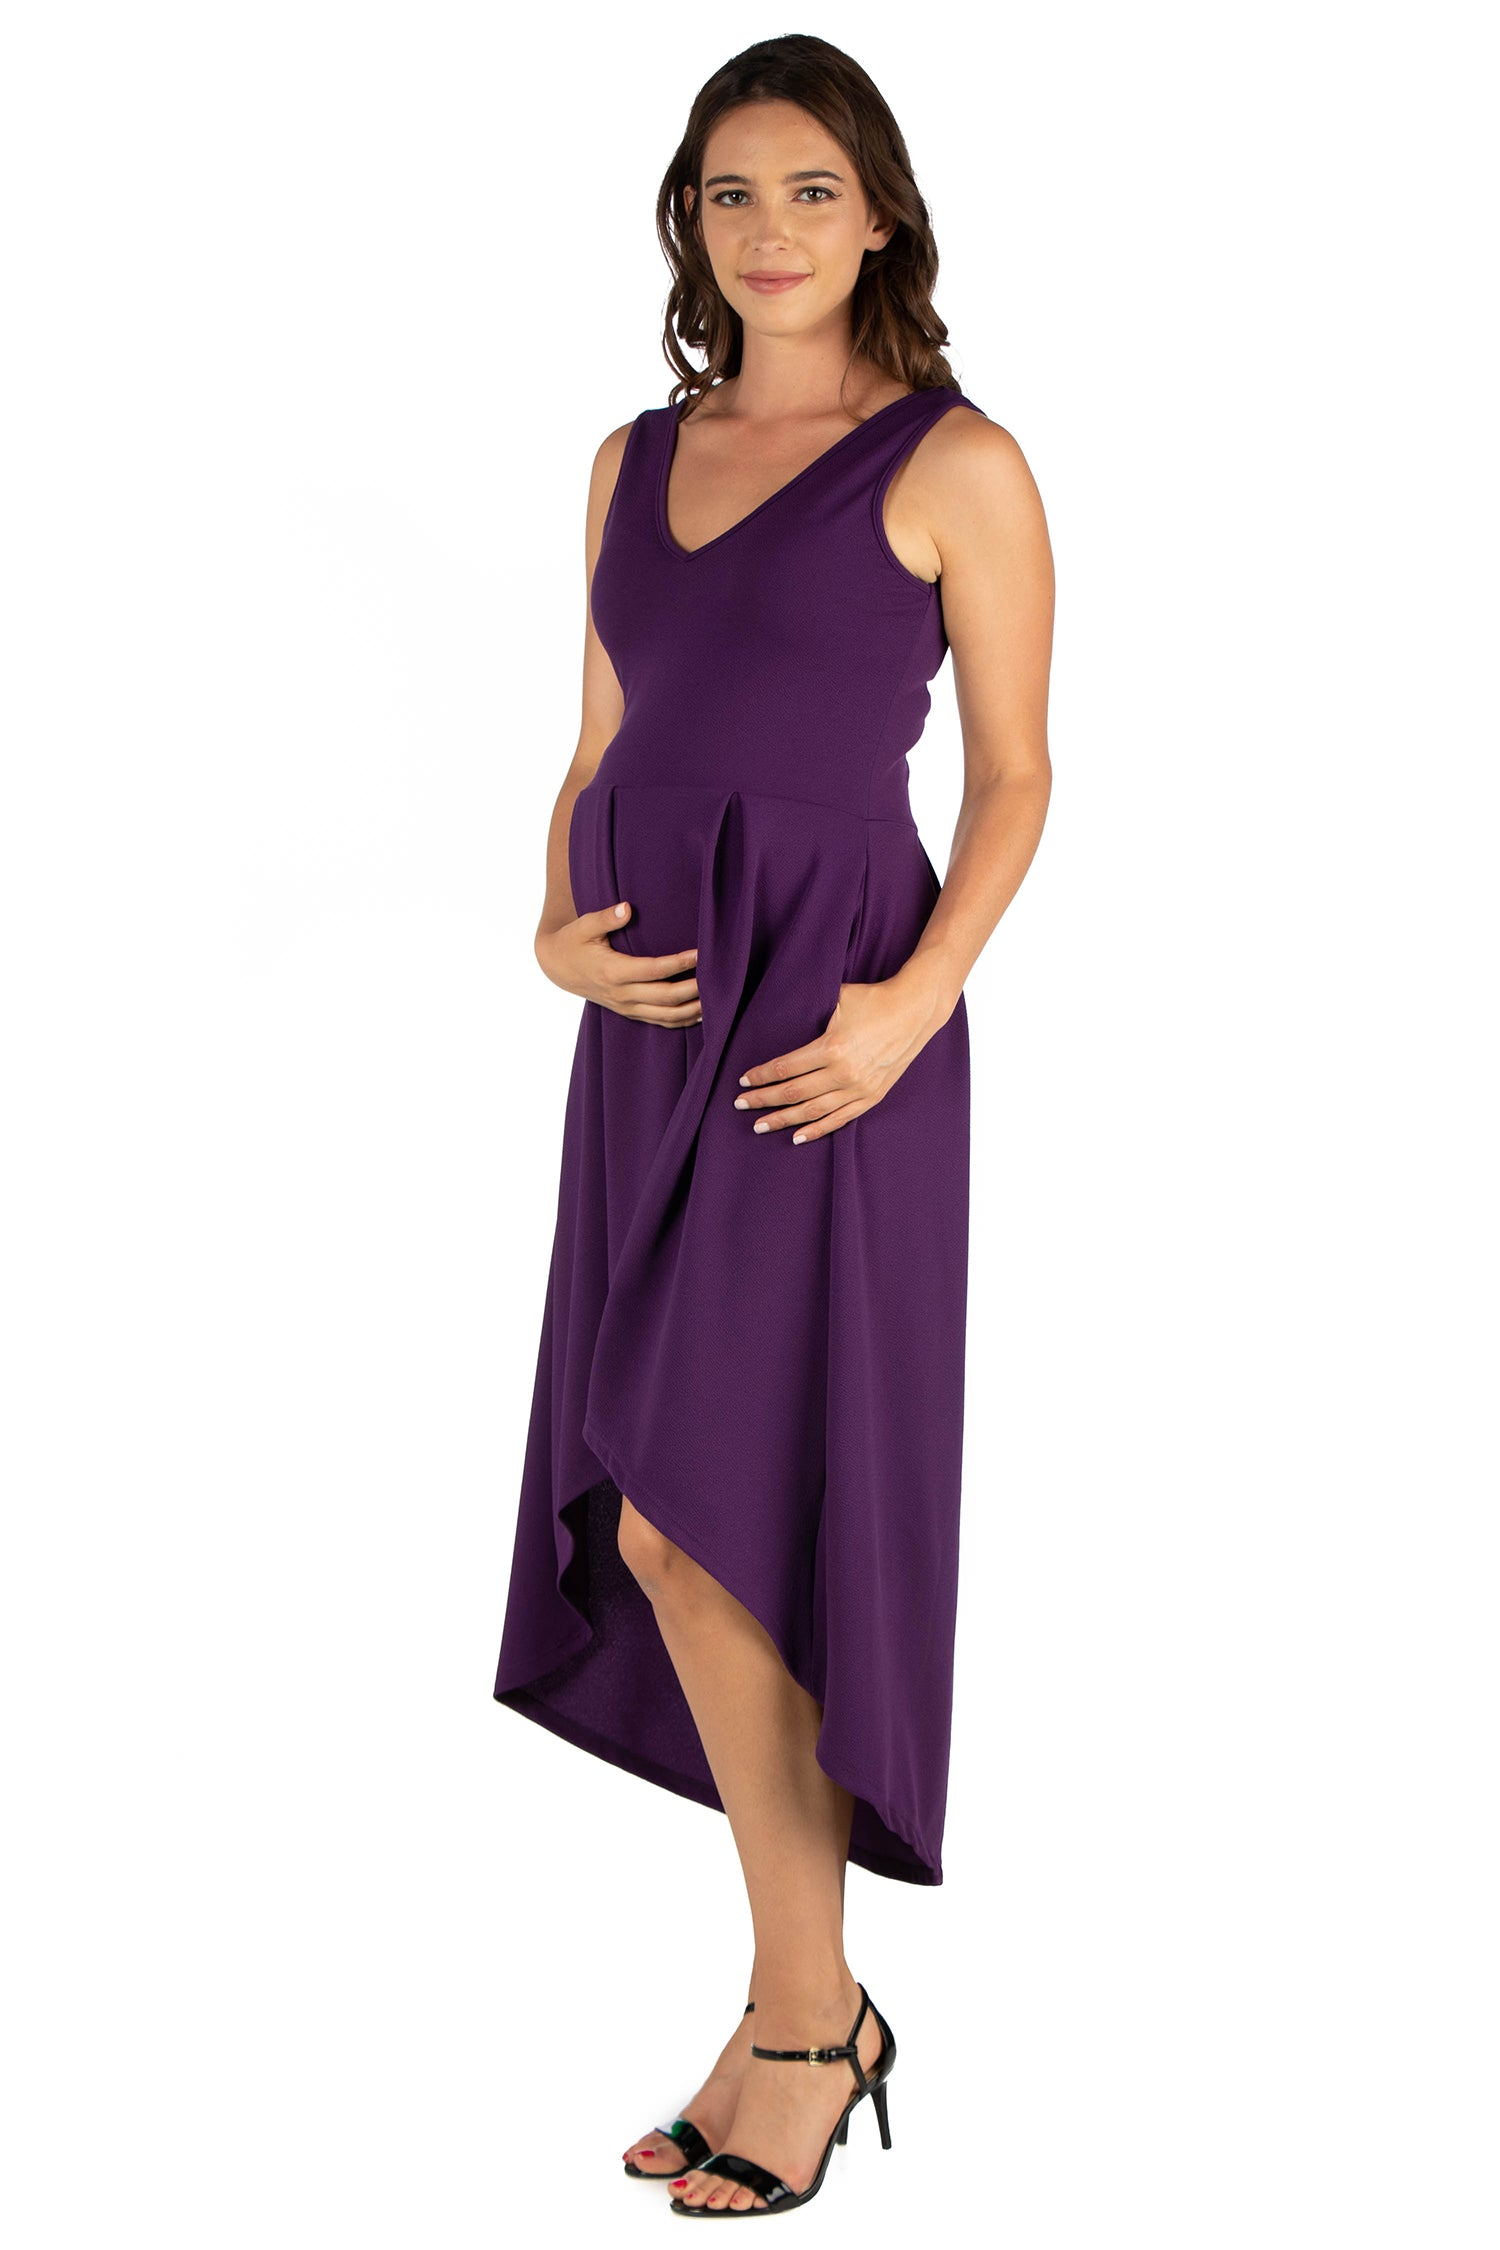 24seven Comfort Apparel High Low Maternity Party Dress with Pockets-DRESSES-24Seven Comfort Apparel-PURPLE-1X-24/7 Comfort Apparel